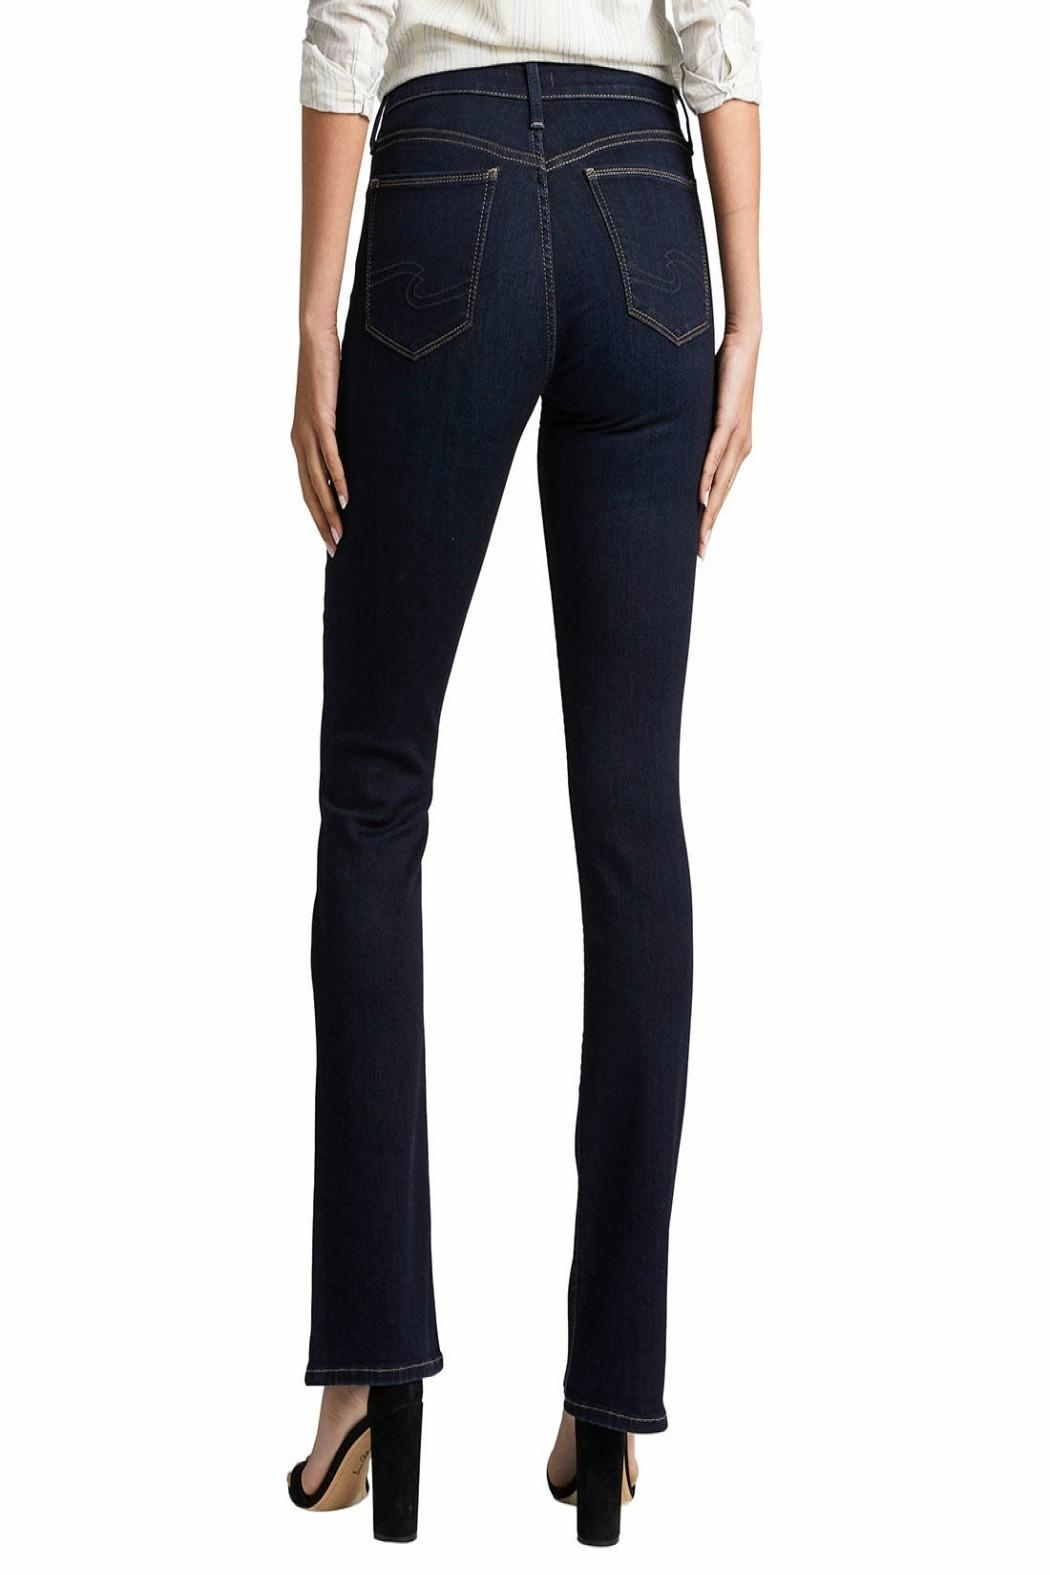 Silver Jeans Co. Avery-Slim High-Rise Jeans - Front Full Image